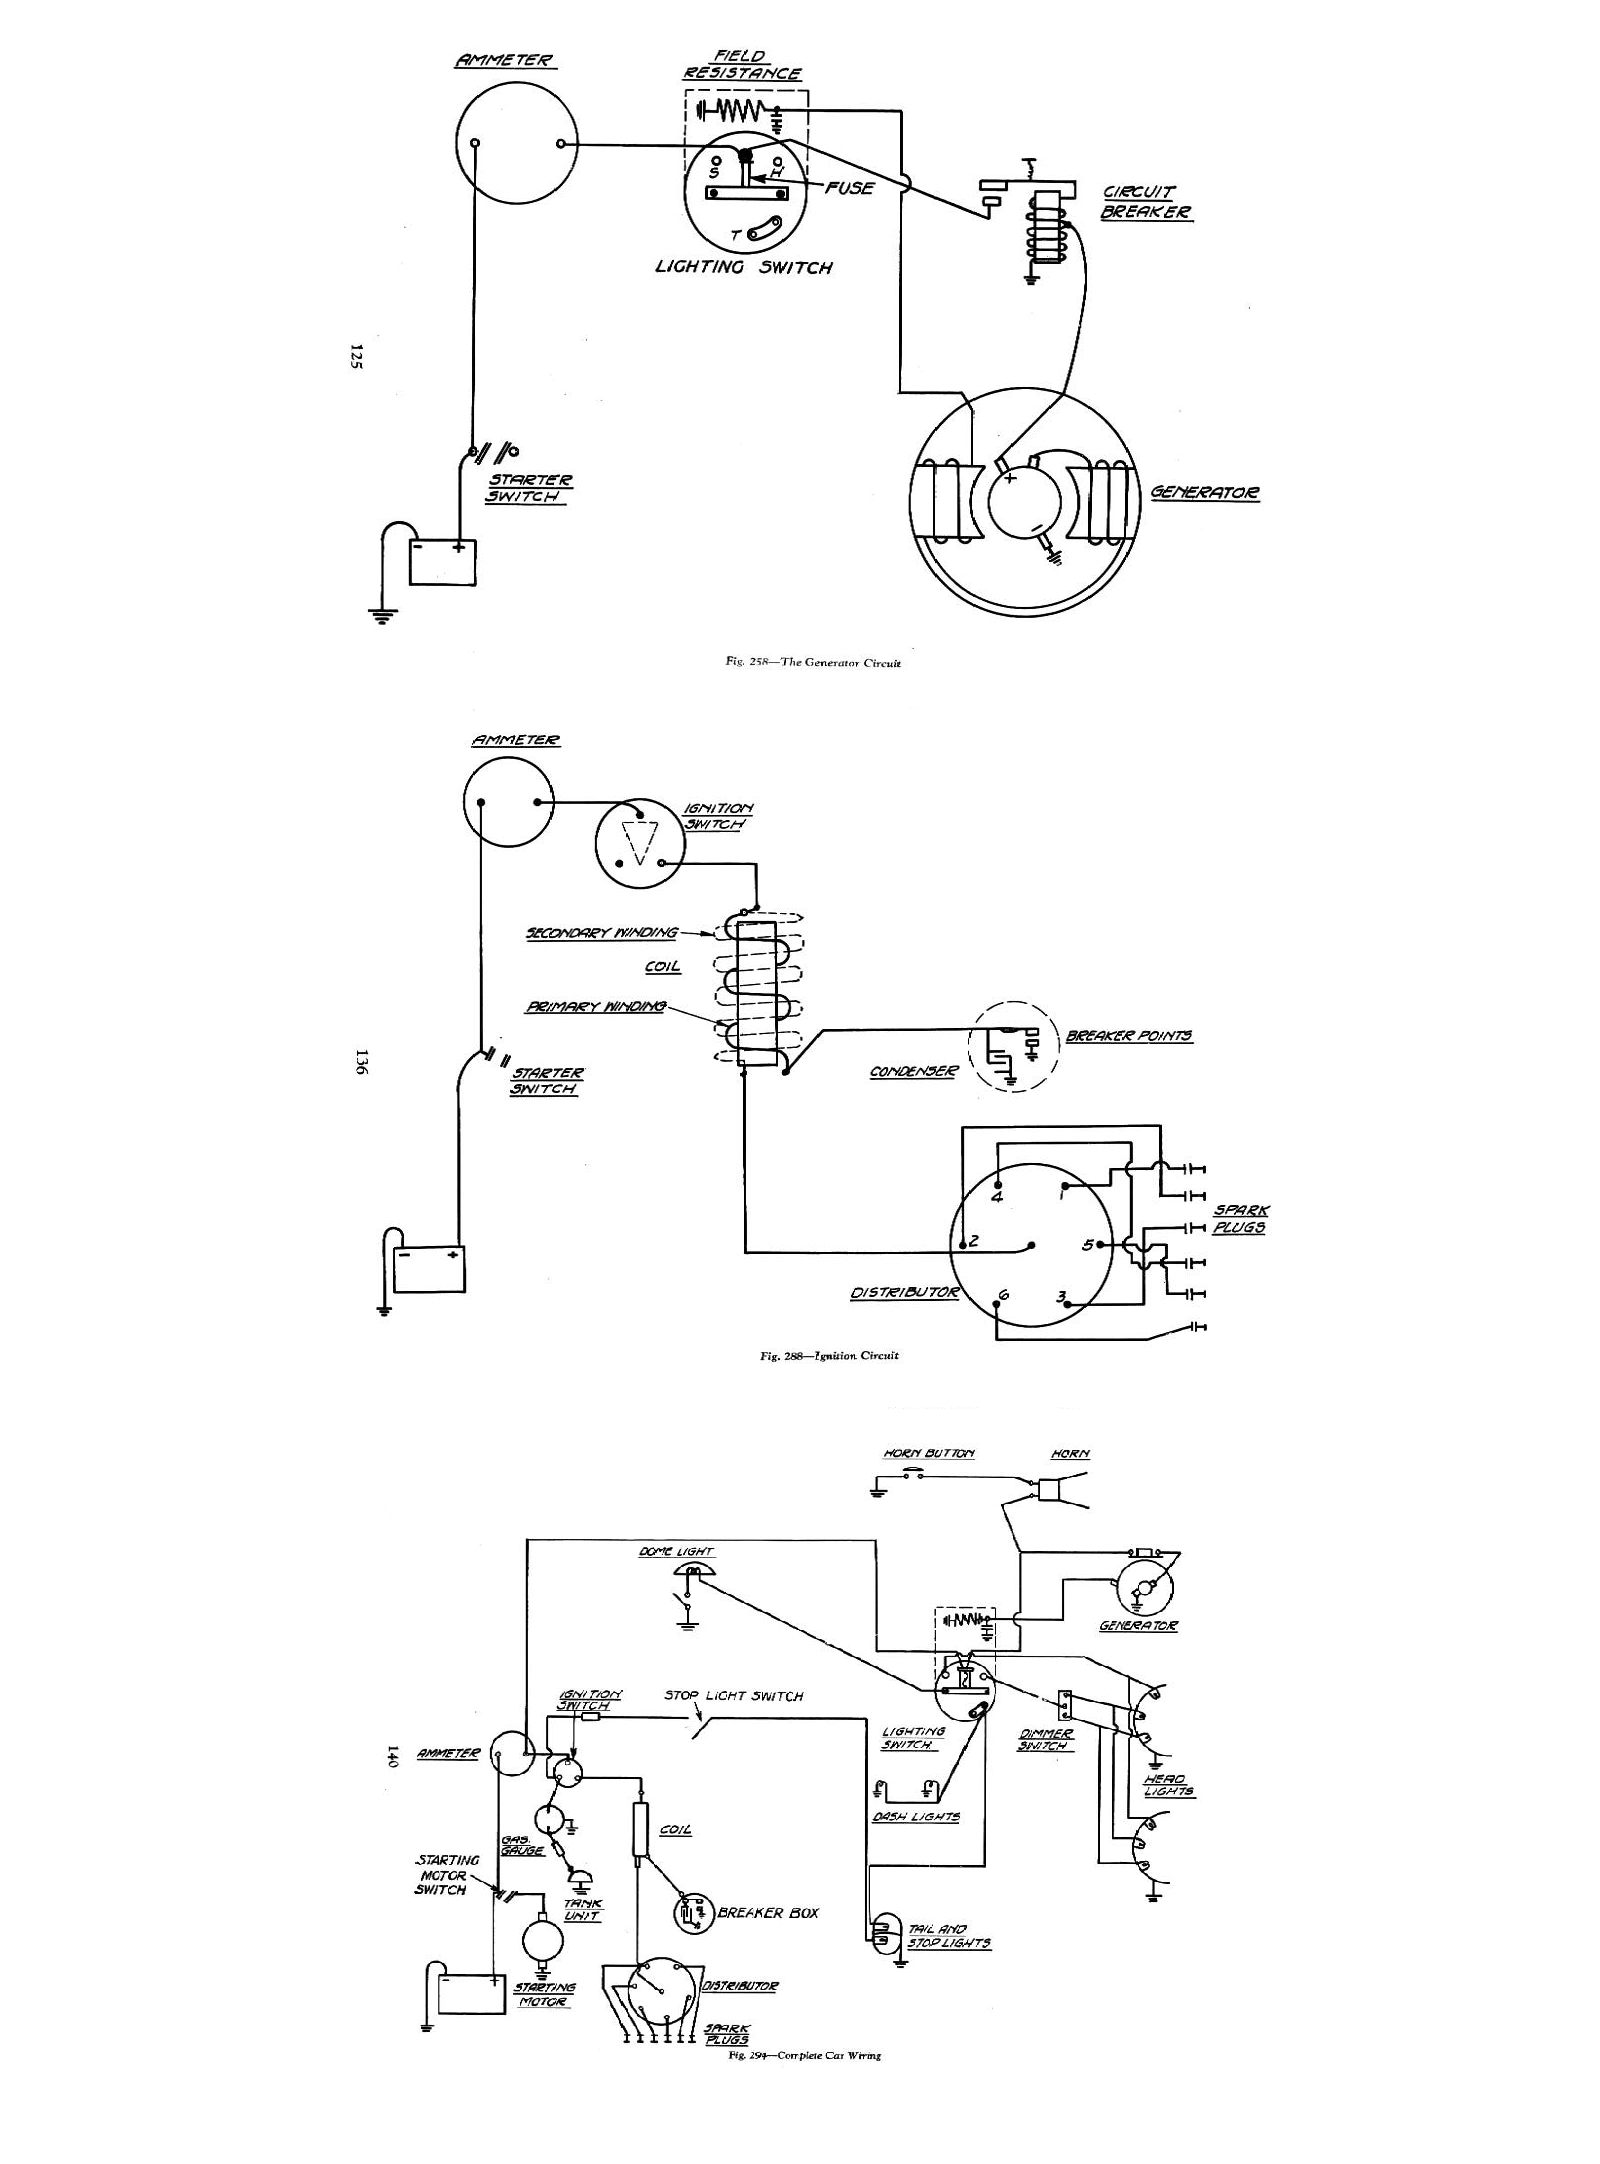 Electrical Wiring Diagram For 1928 Chevrolet Automobiles Likewise Home Diagrams Together With Chevy Wire 1979 1995